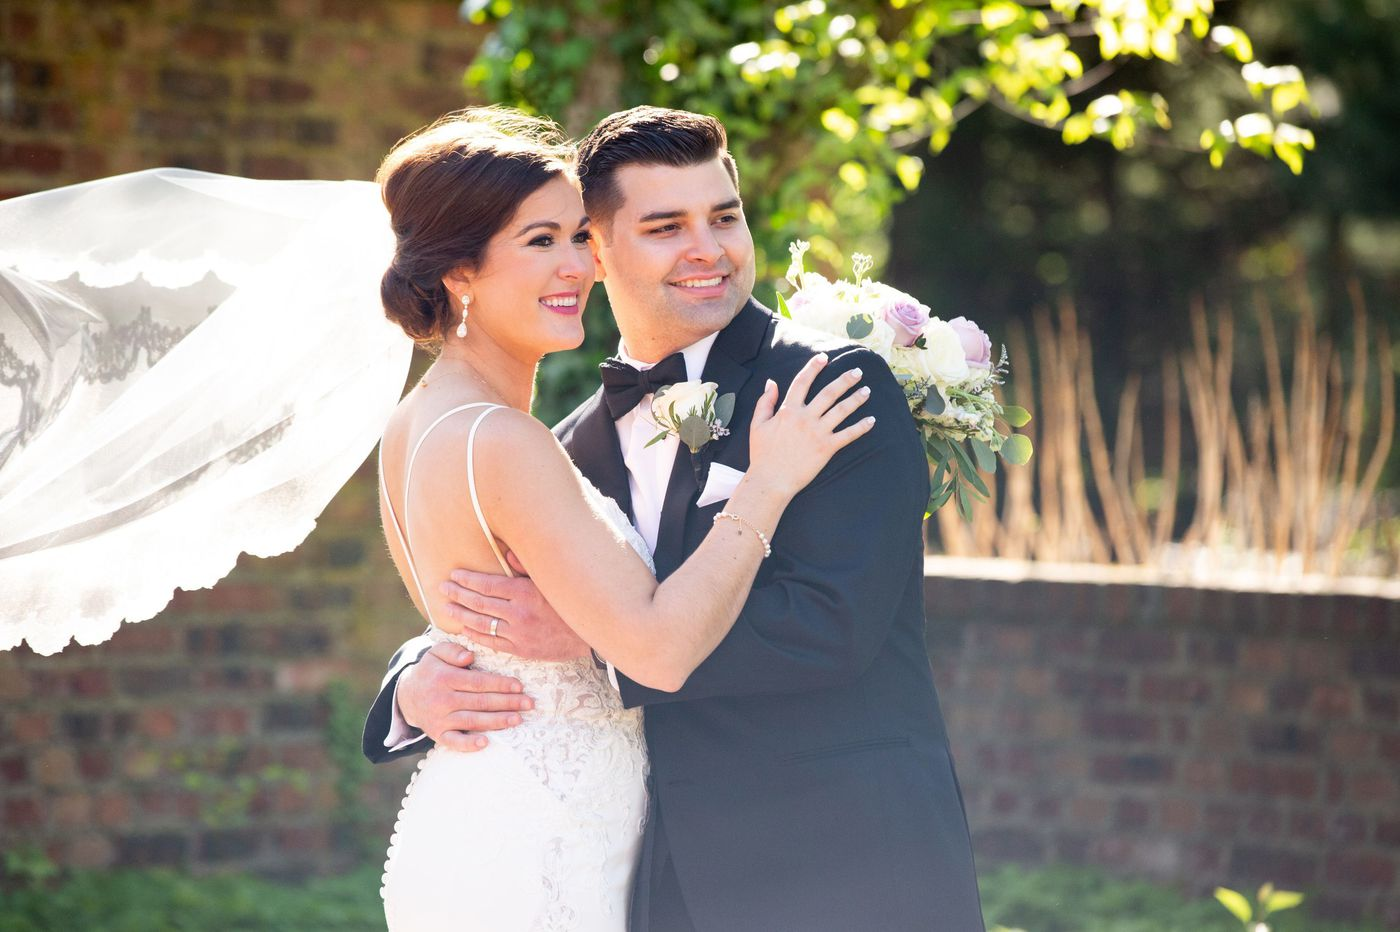 Philadelphia weddings: Claire Krantz and Alan Dyer Jr.